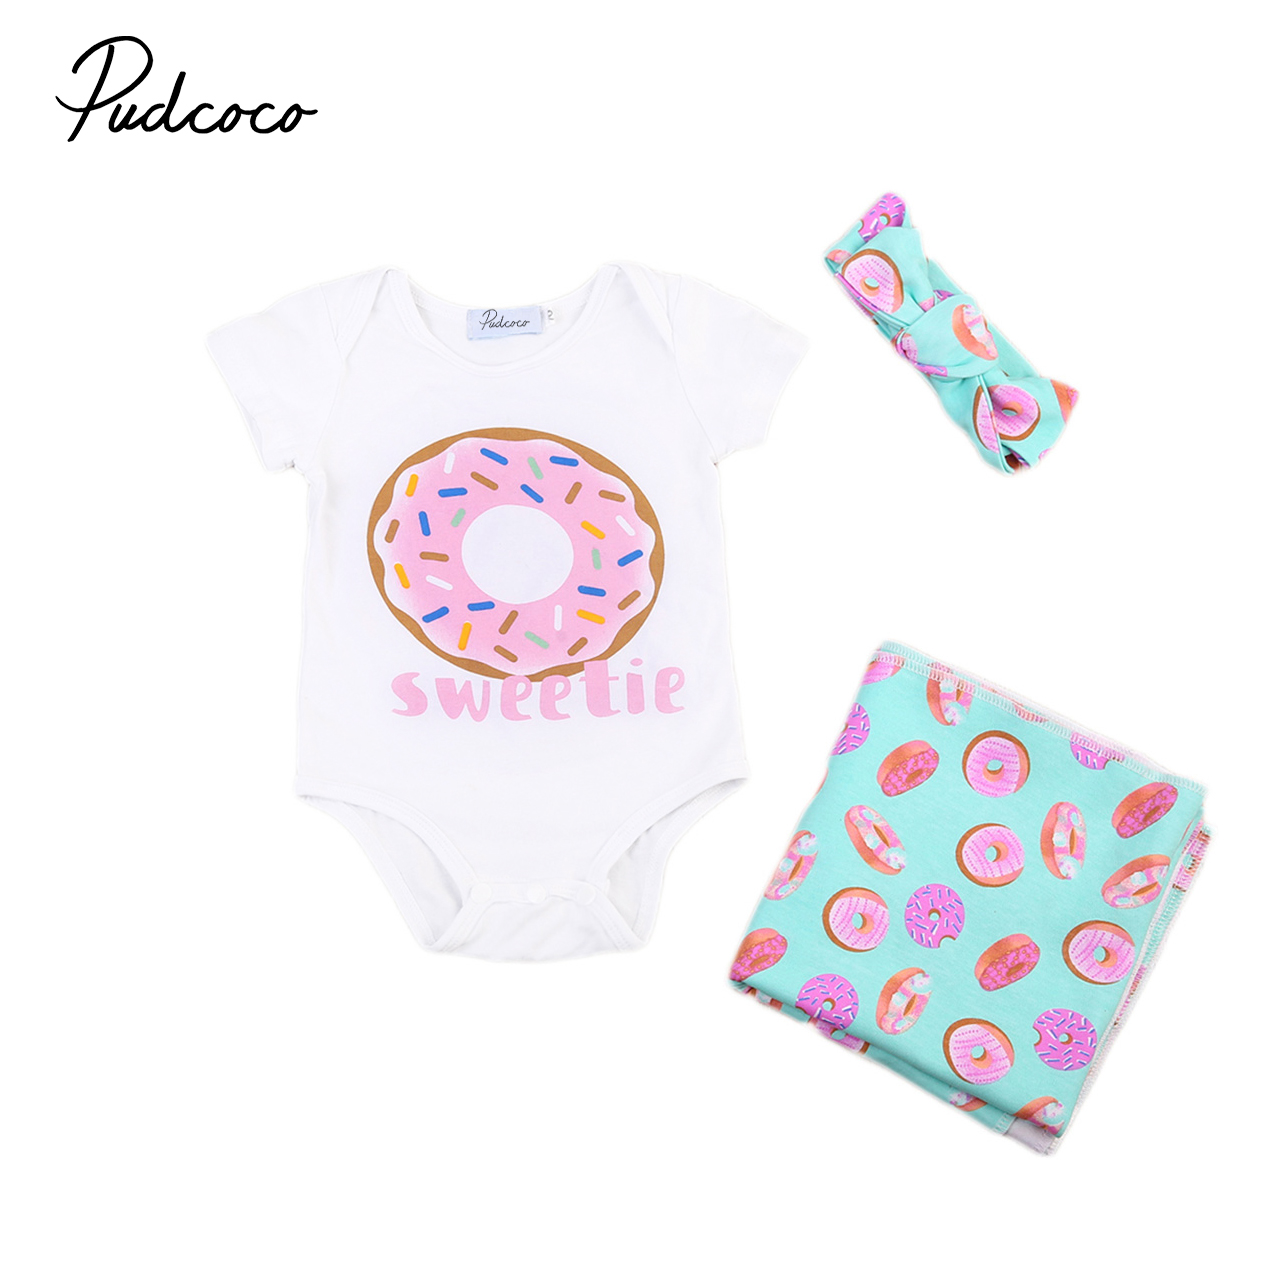 Newborn Infant Outfits Cute Baby Outfits Set Newborn Infant Baby Boys Girls Print Swaddle Blankets Rompers Headband 3pcs Outfits Clothes Sets Summer In Clothing Sets From